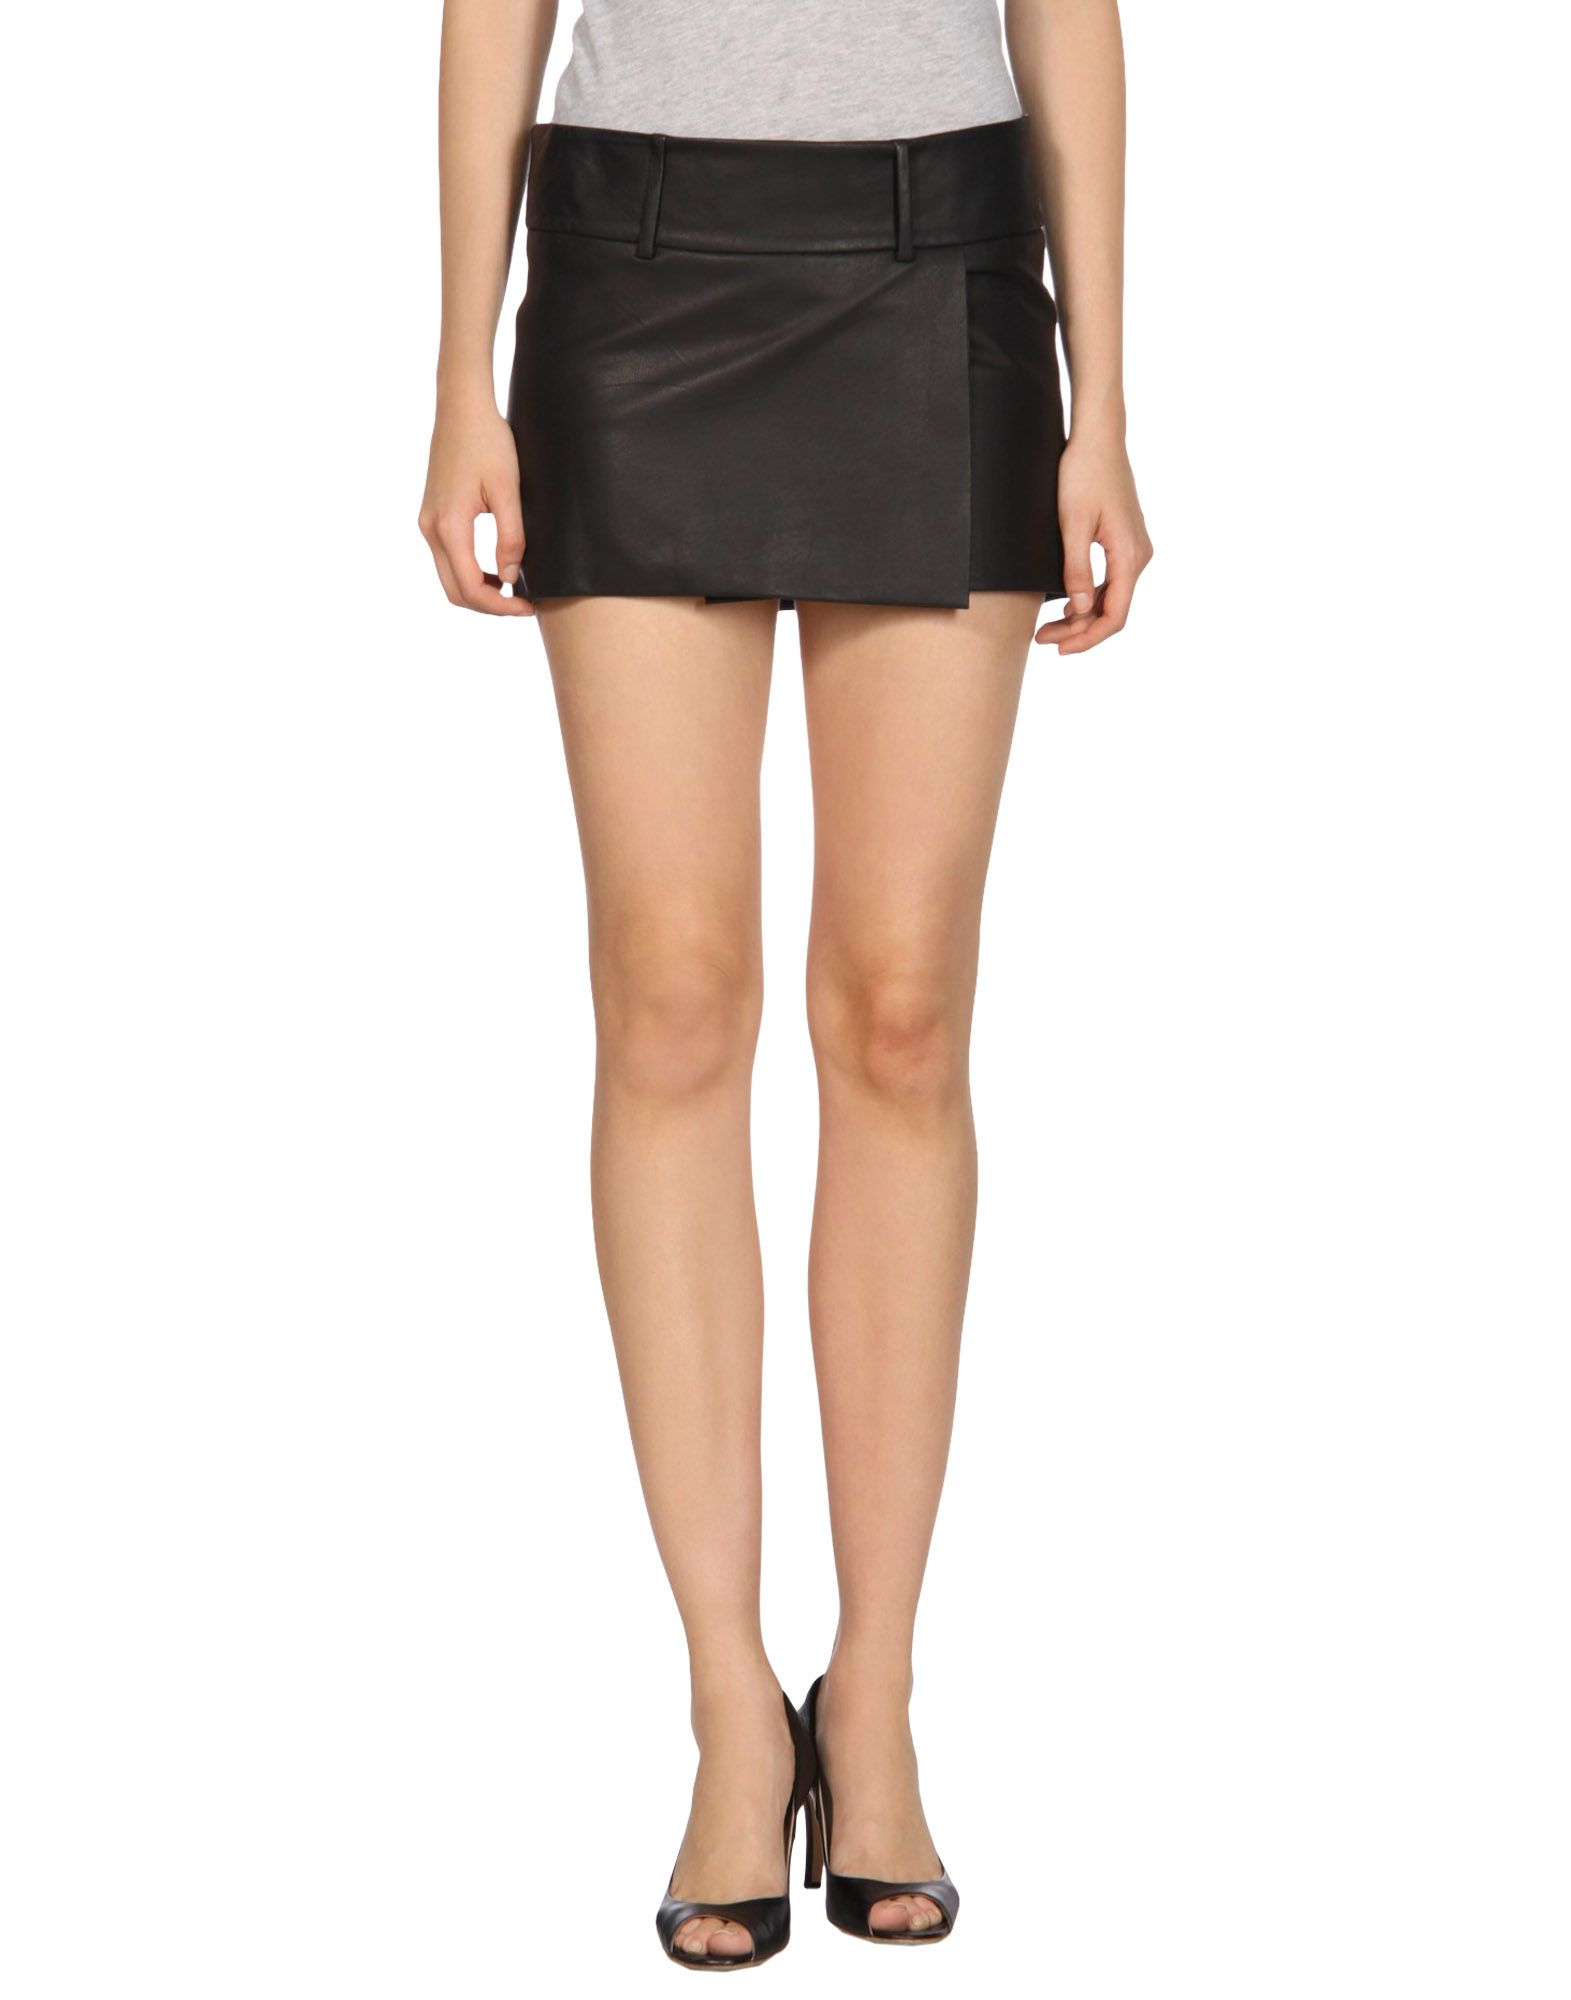 acne leather skirt in black save 35 lyst